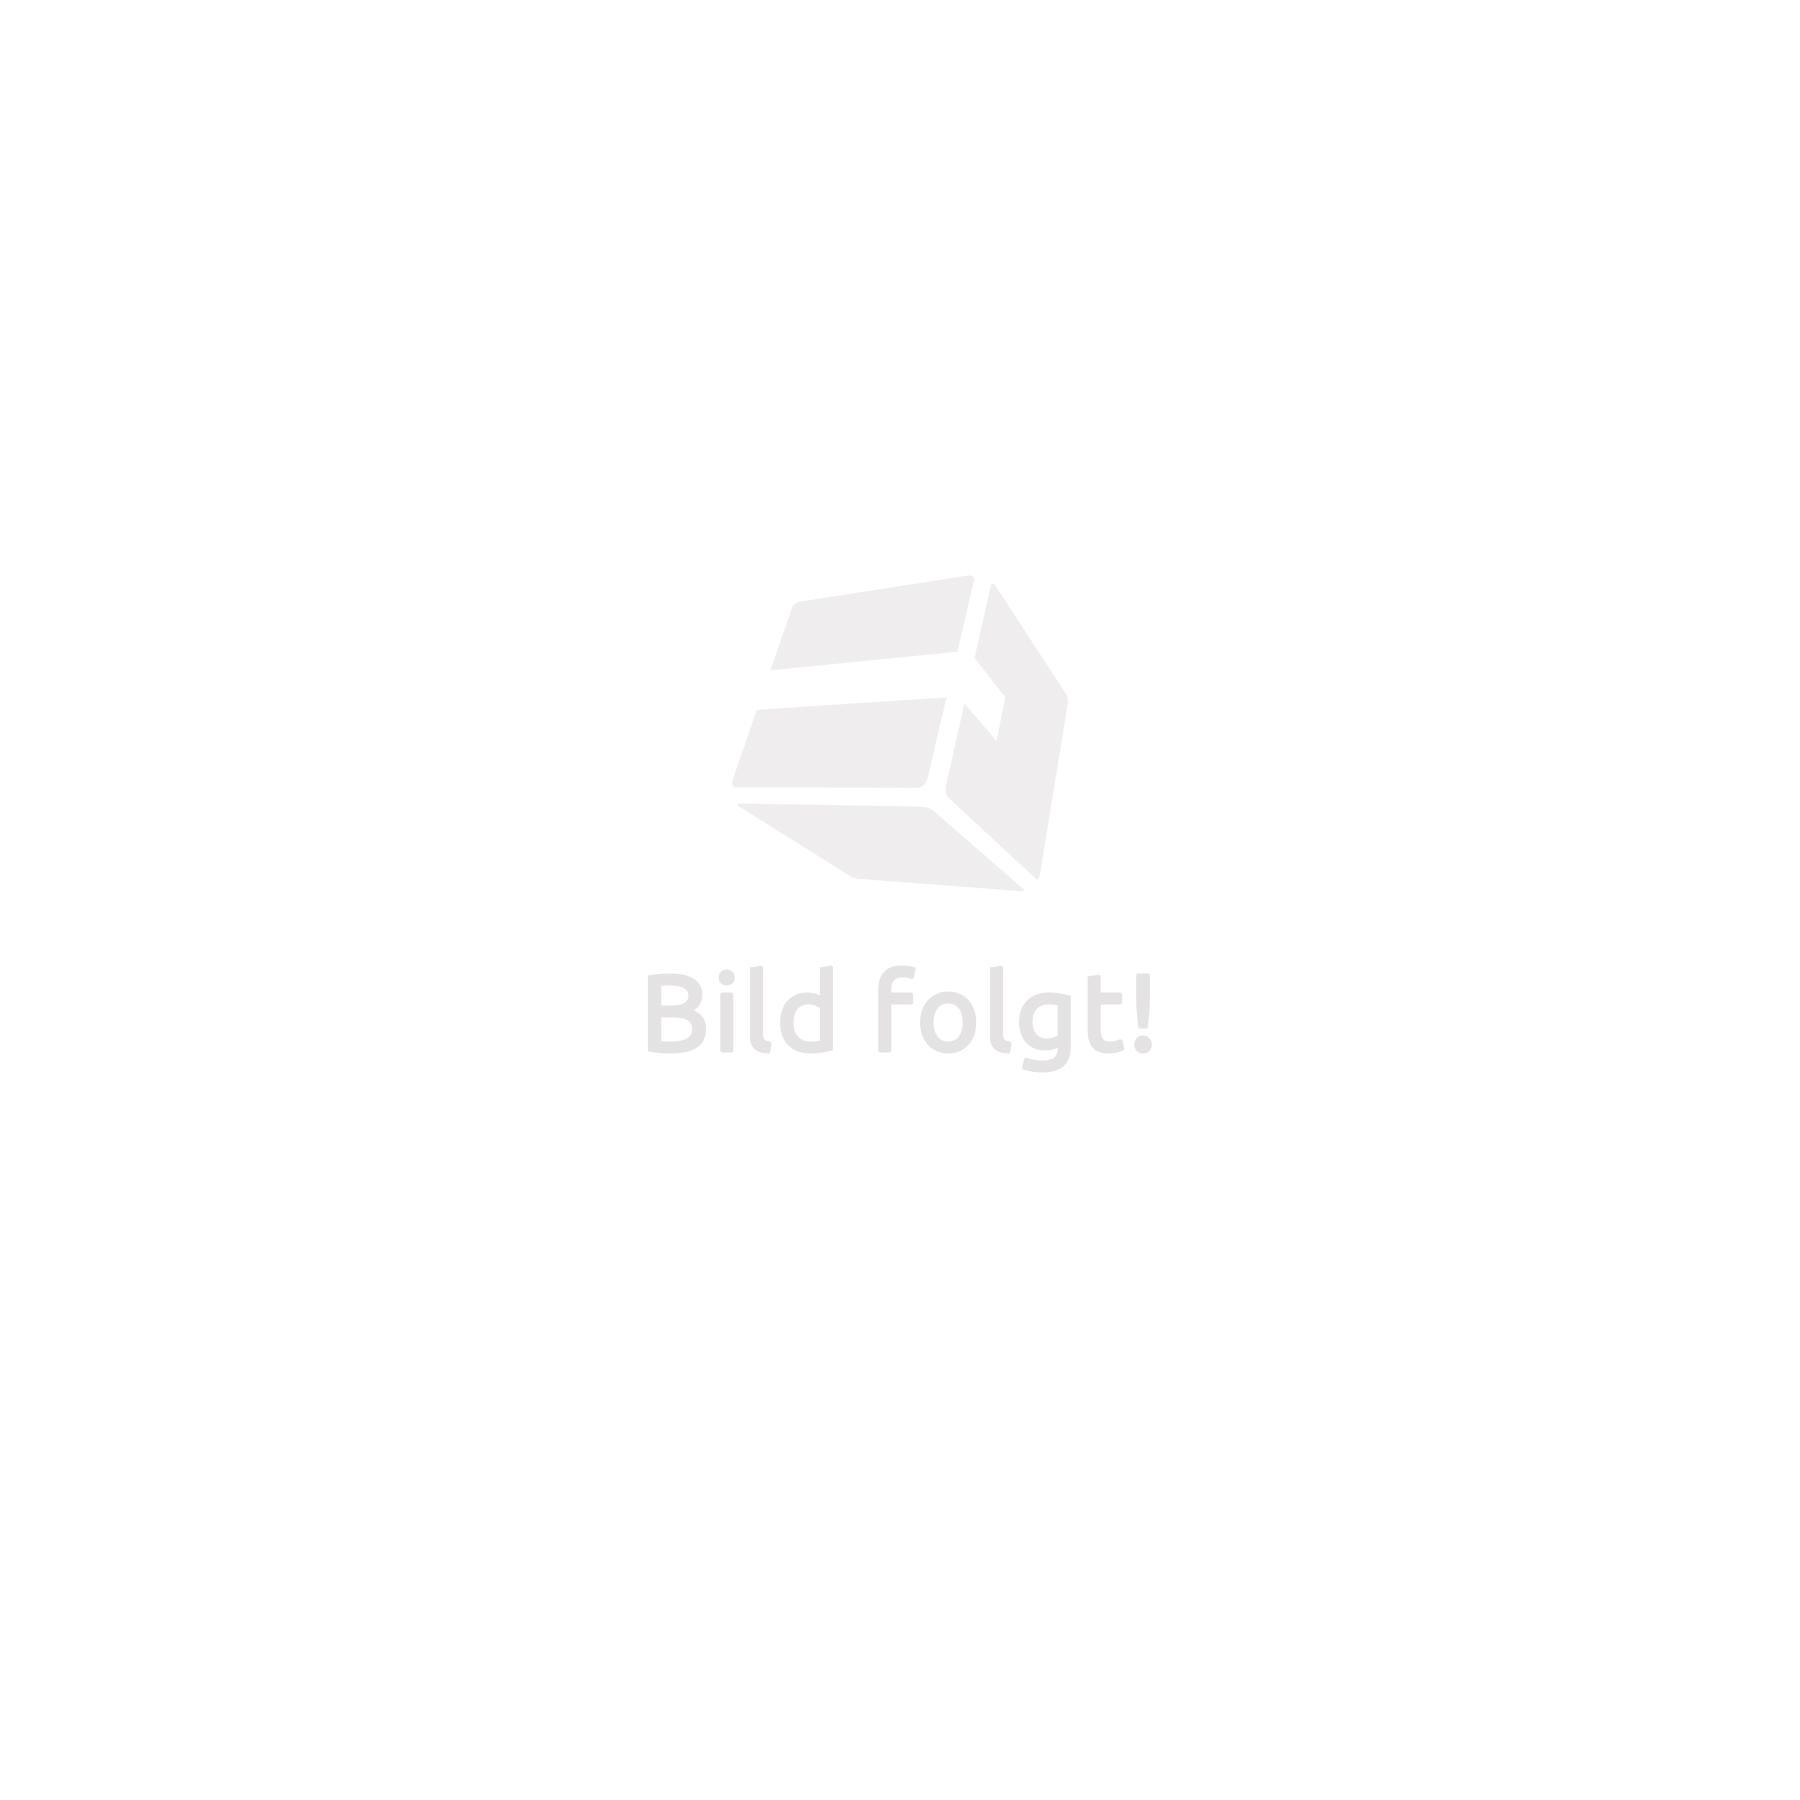 Bureau informatique table de l 39 ordinateur travail mobilier Meuble bureau multimedia